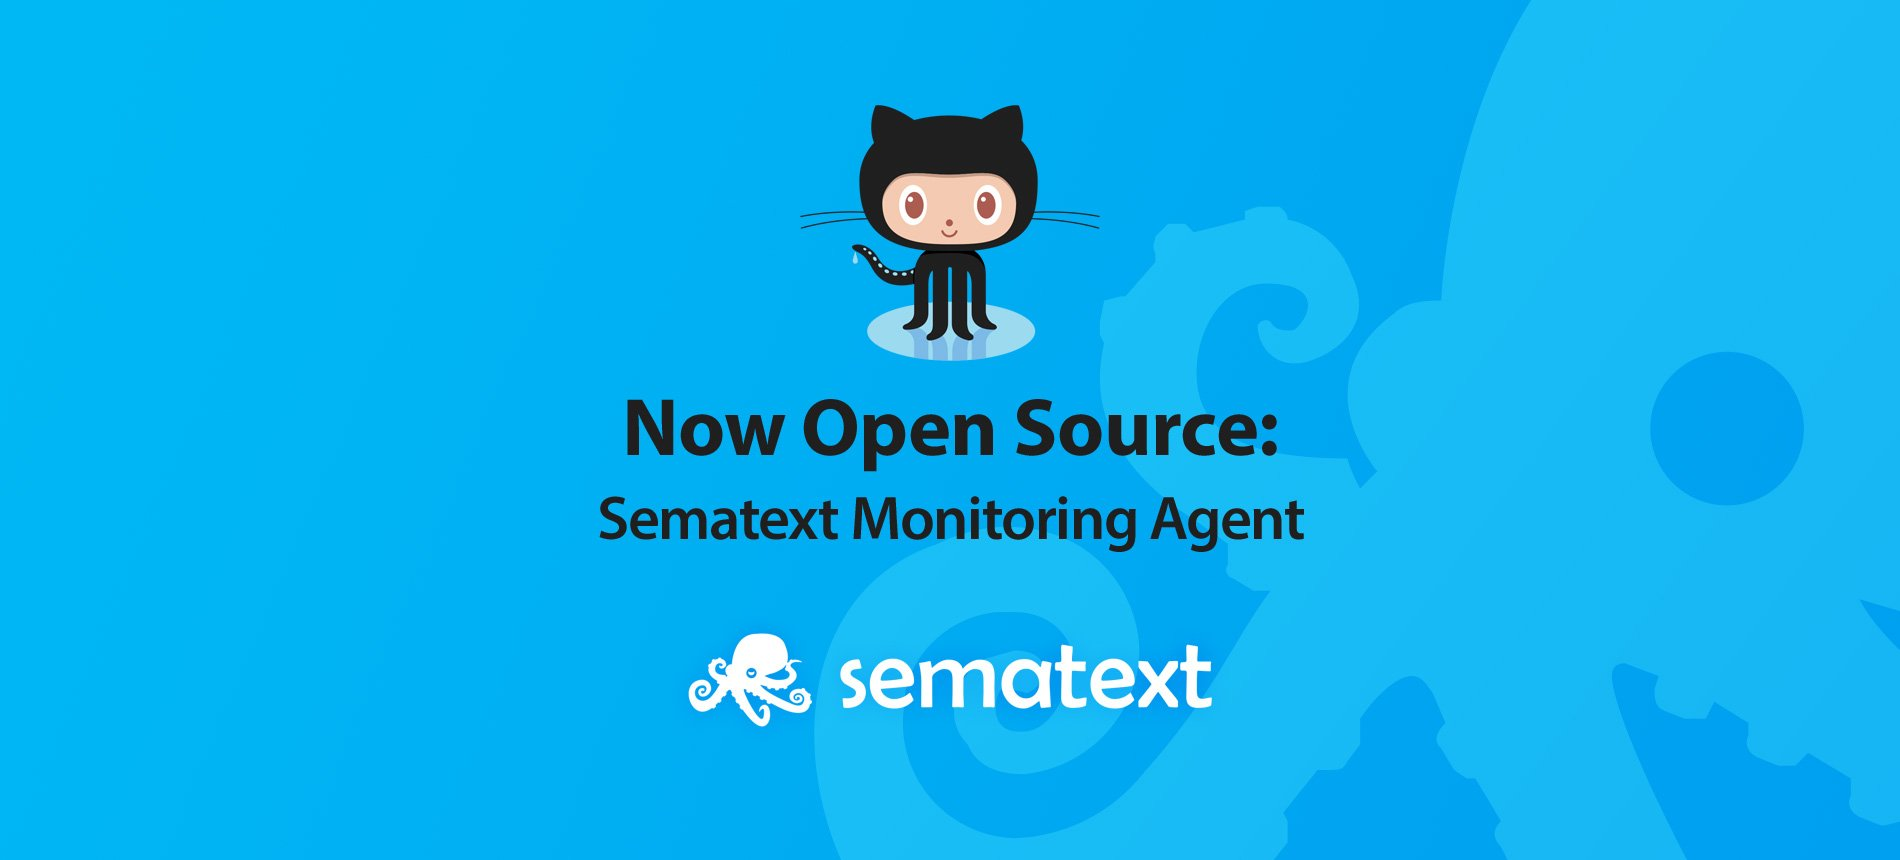 Now Open Source: Sematext Monitoring Agent - Sematext